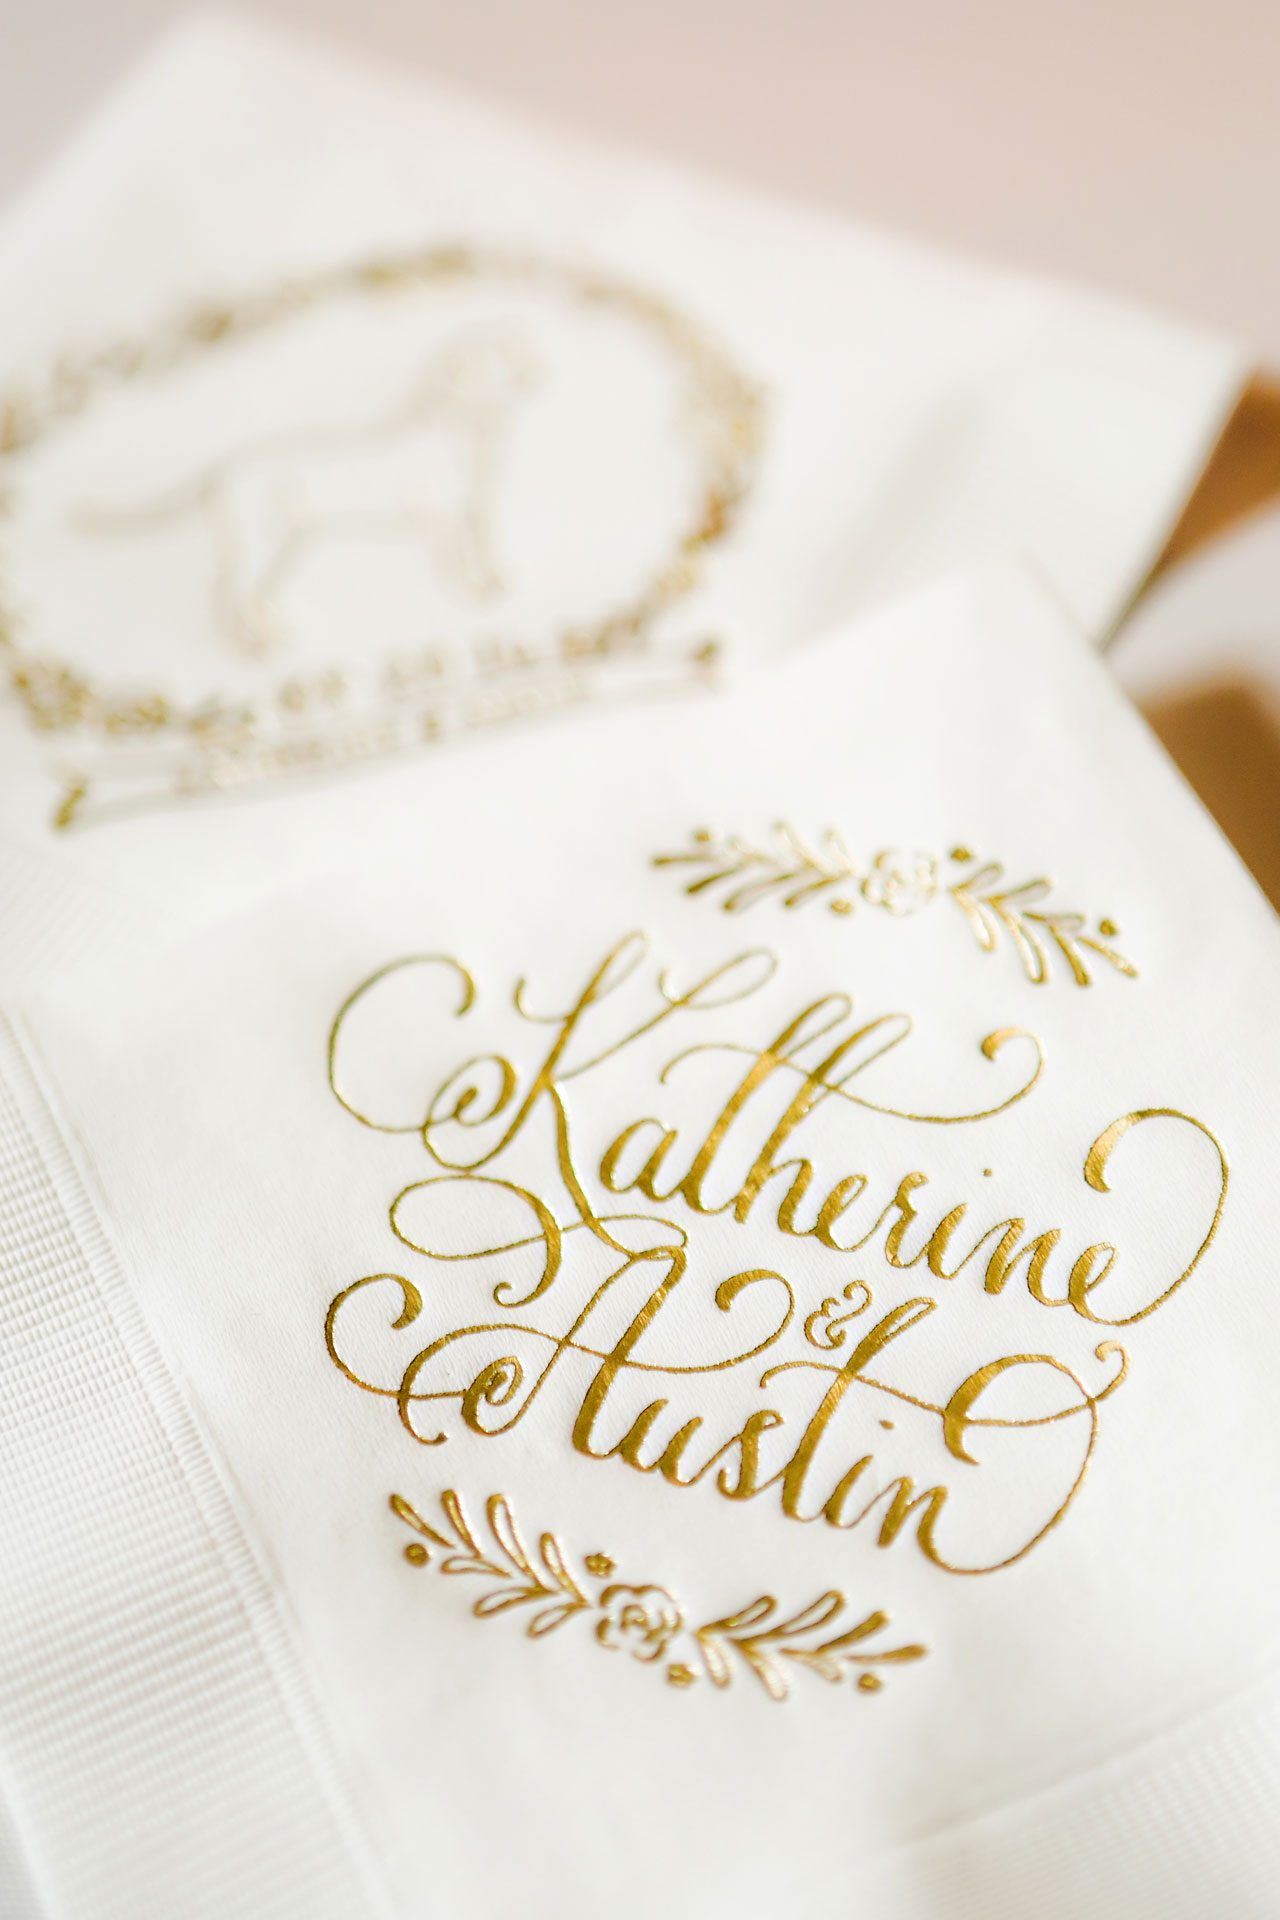 234 katherine austin scottish rite indianapolis wedding